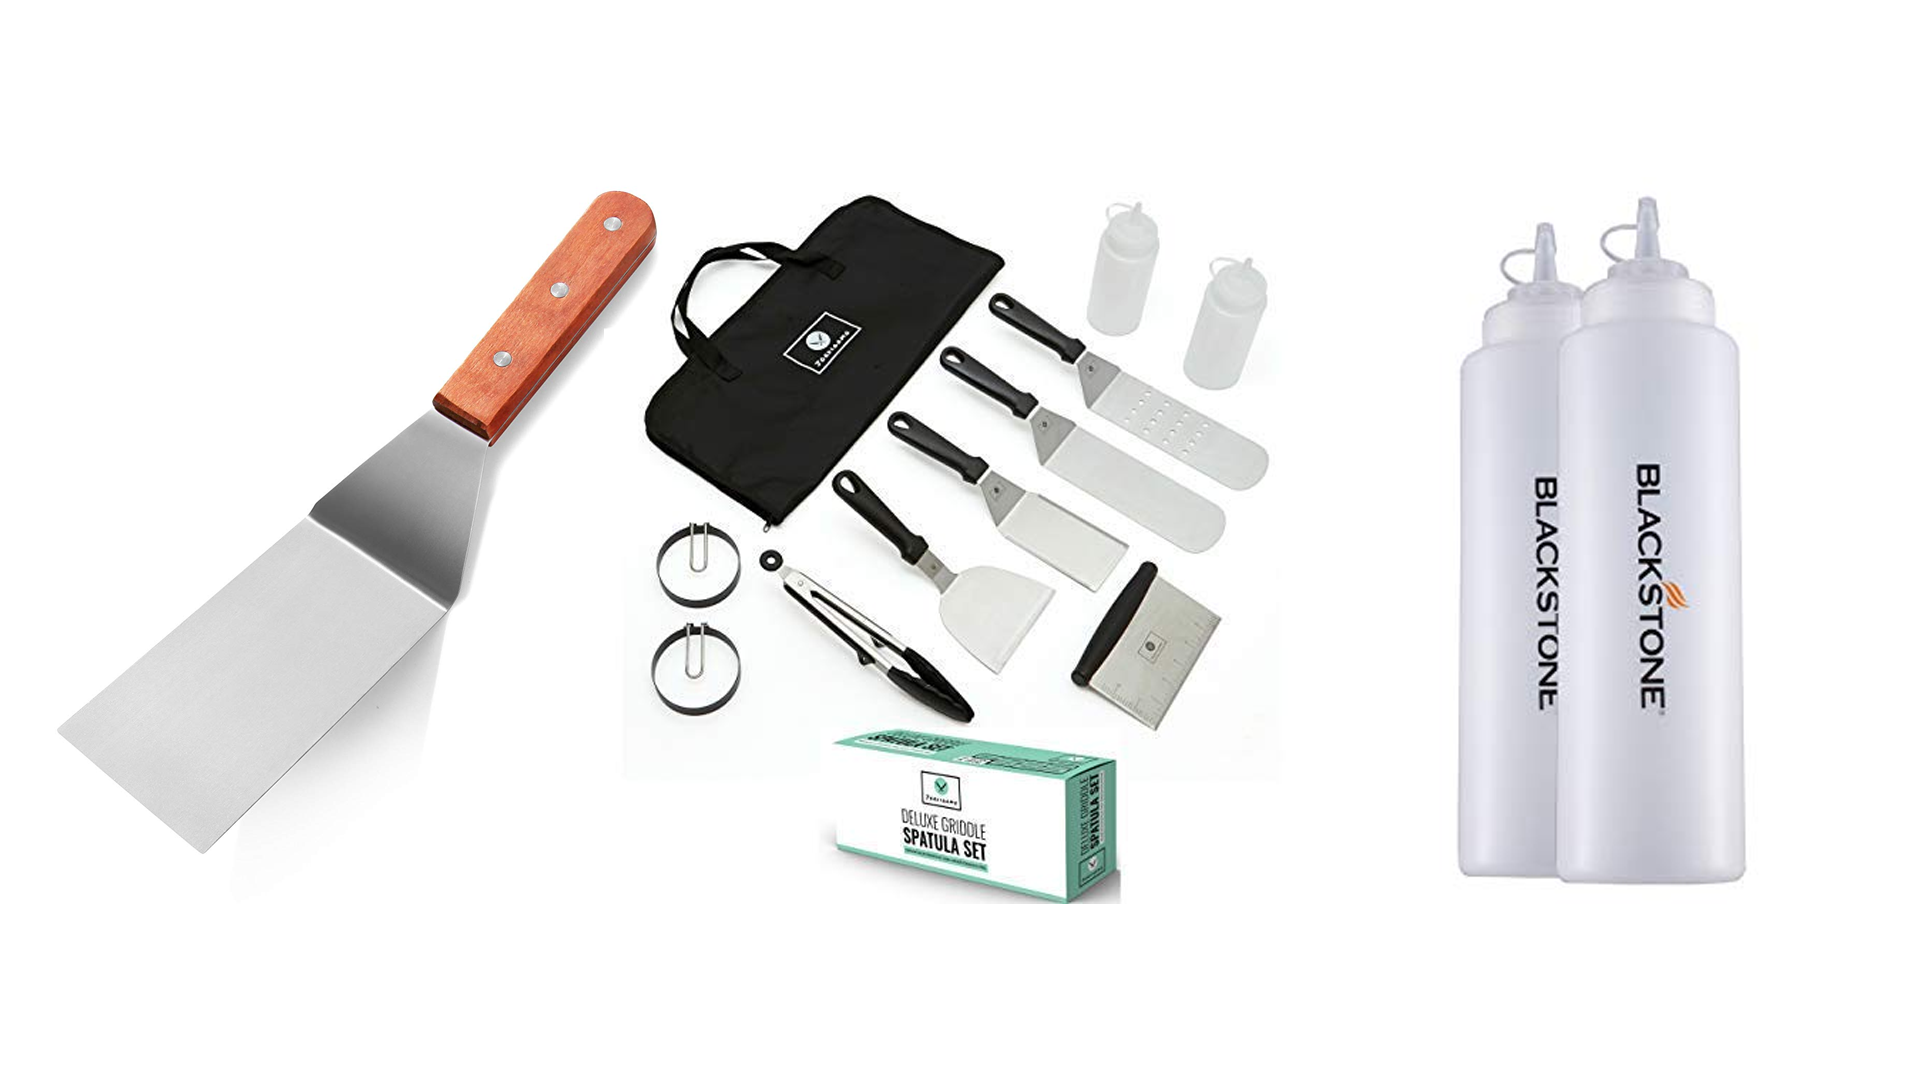 A spatula, two oil bottles, and a griddle tool kit